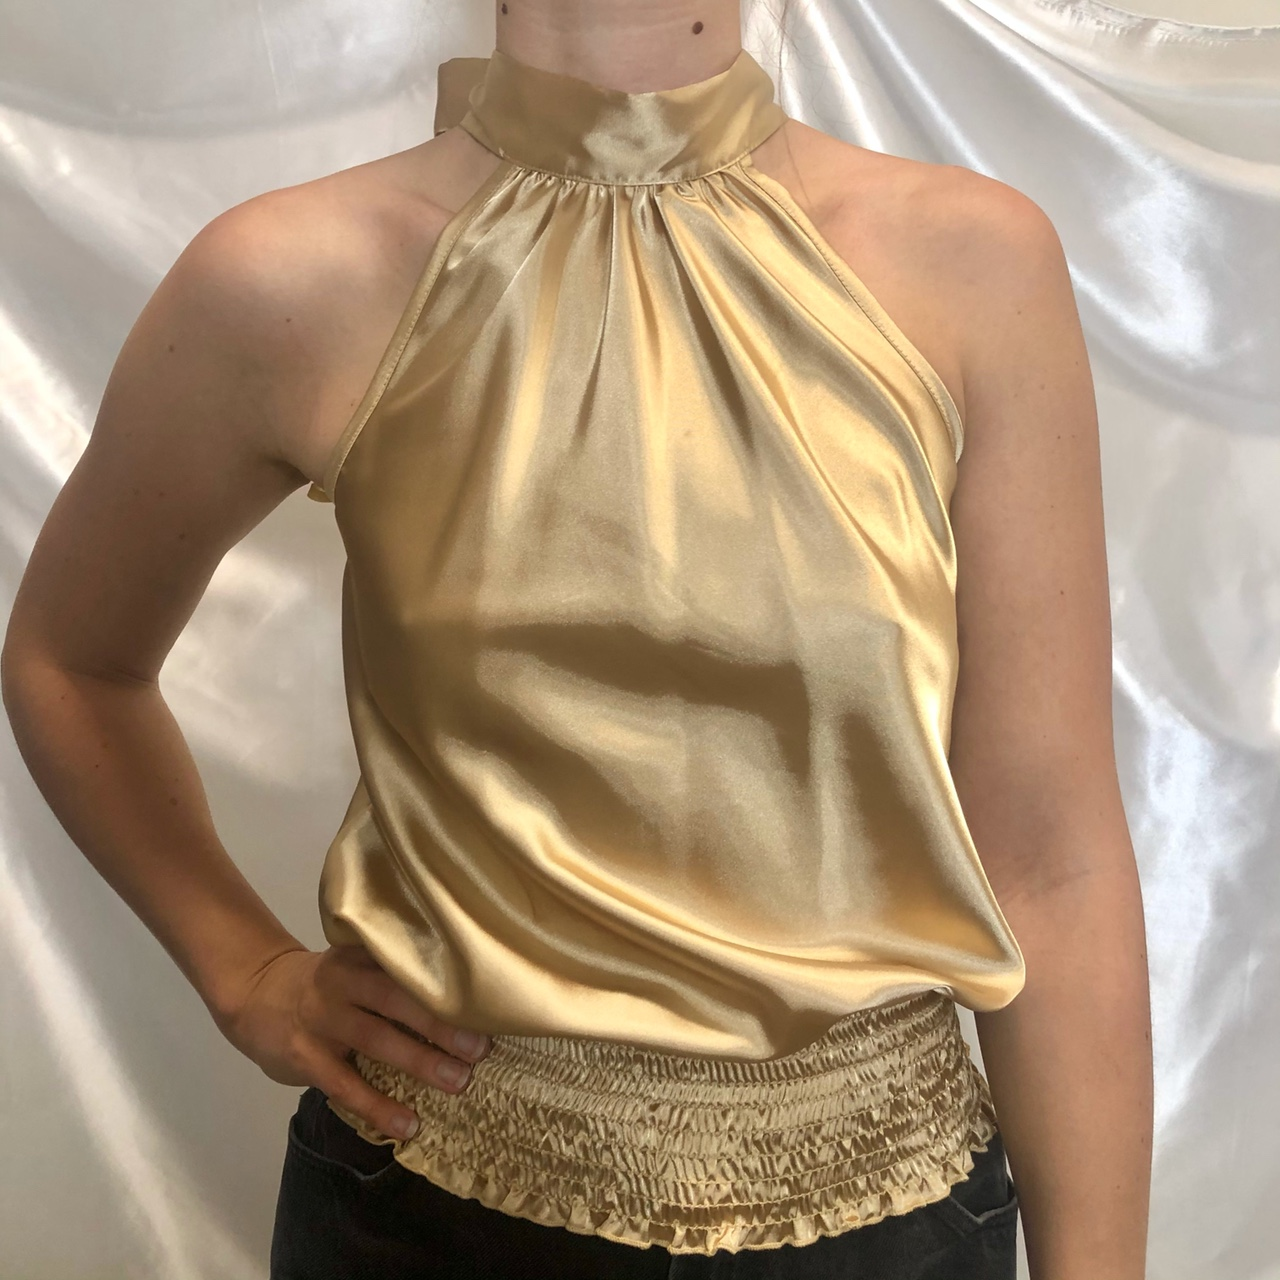 Product Image 1 - Y2K Silky Soft Gold Halter